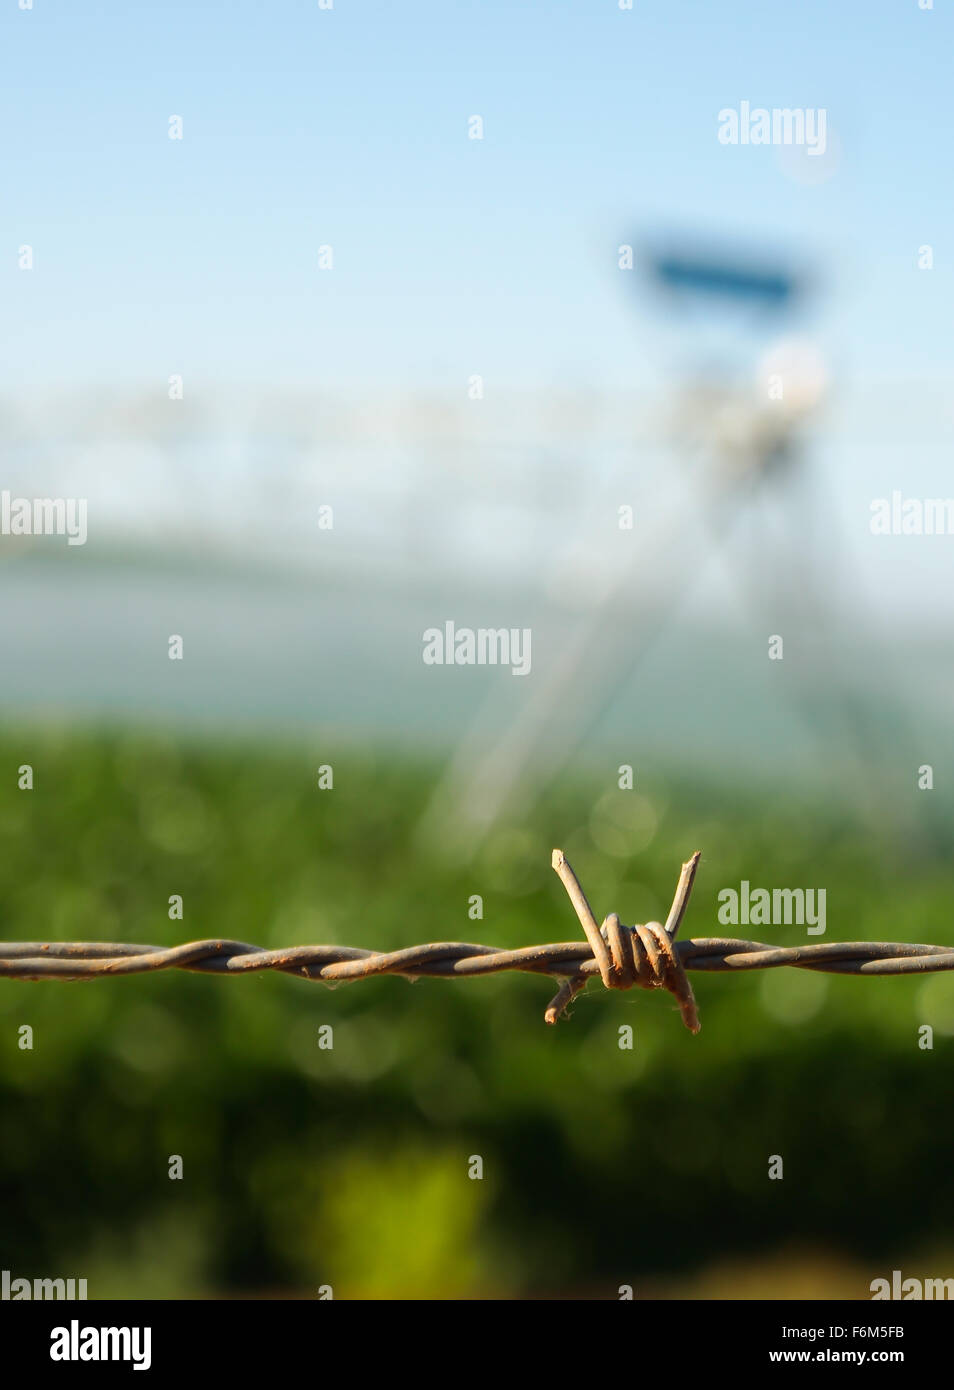 Close up of barbed wire fence - Stock Image